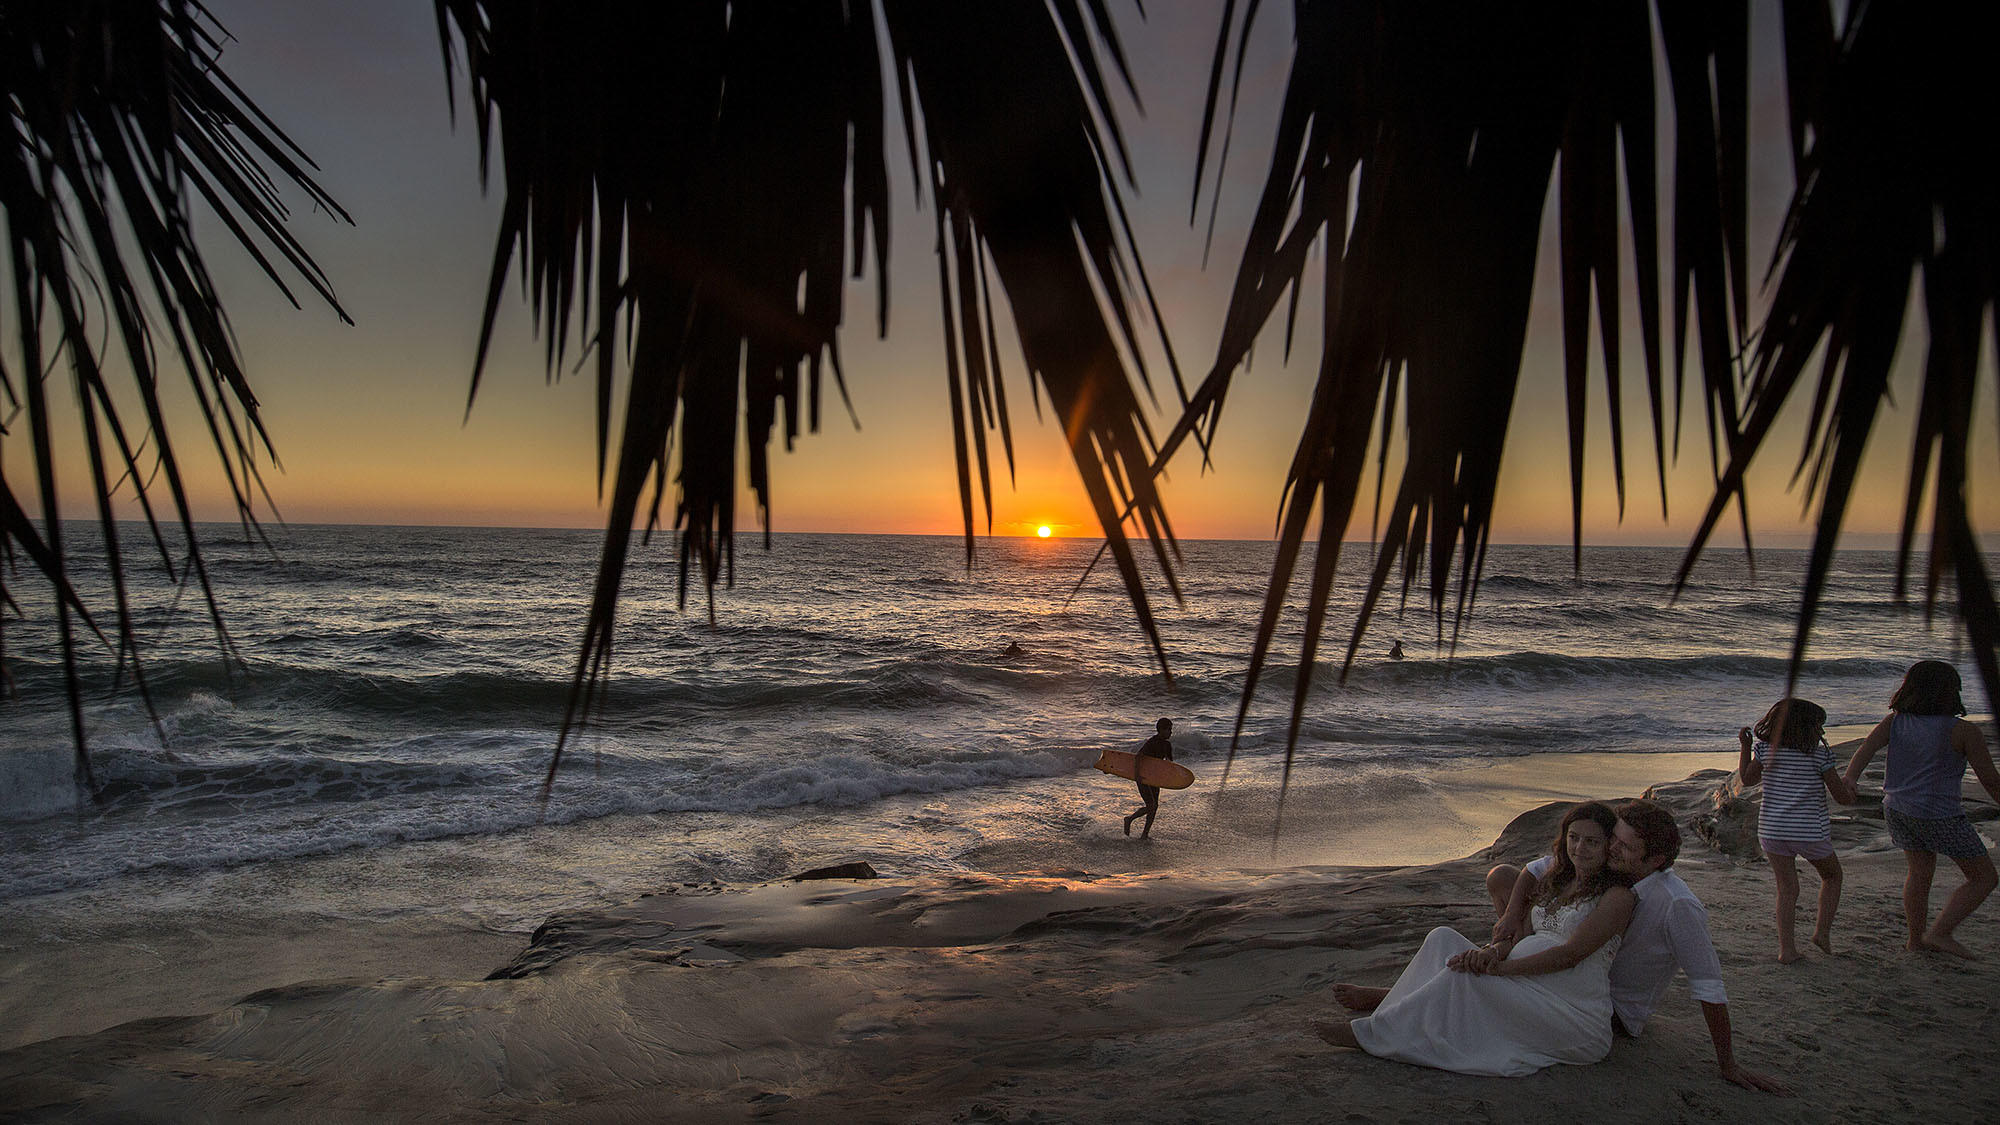 The palm fronds of a palapa reveal a surfer, a couple and children taking in a warm summer sunset at Windansea Beach in La Jolla. (Allen J. Schaben / Los Angeles Times)